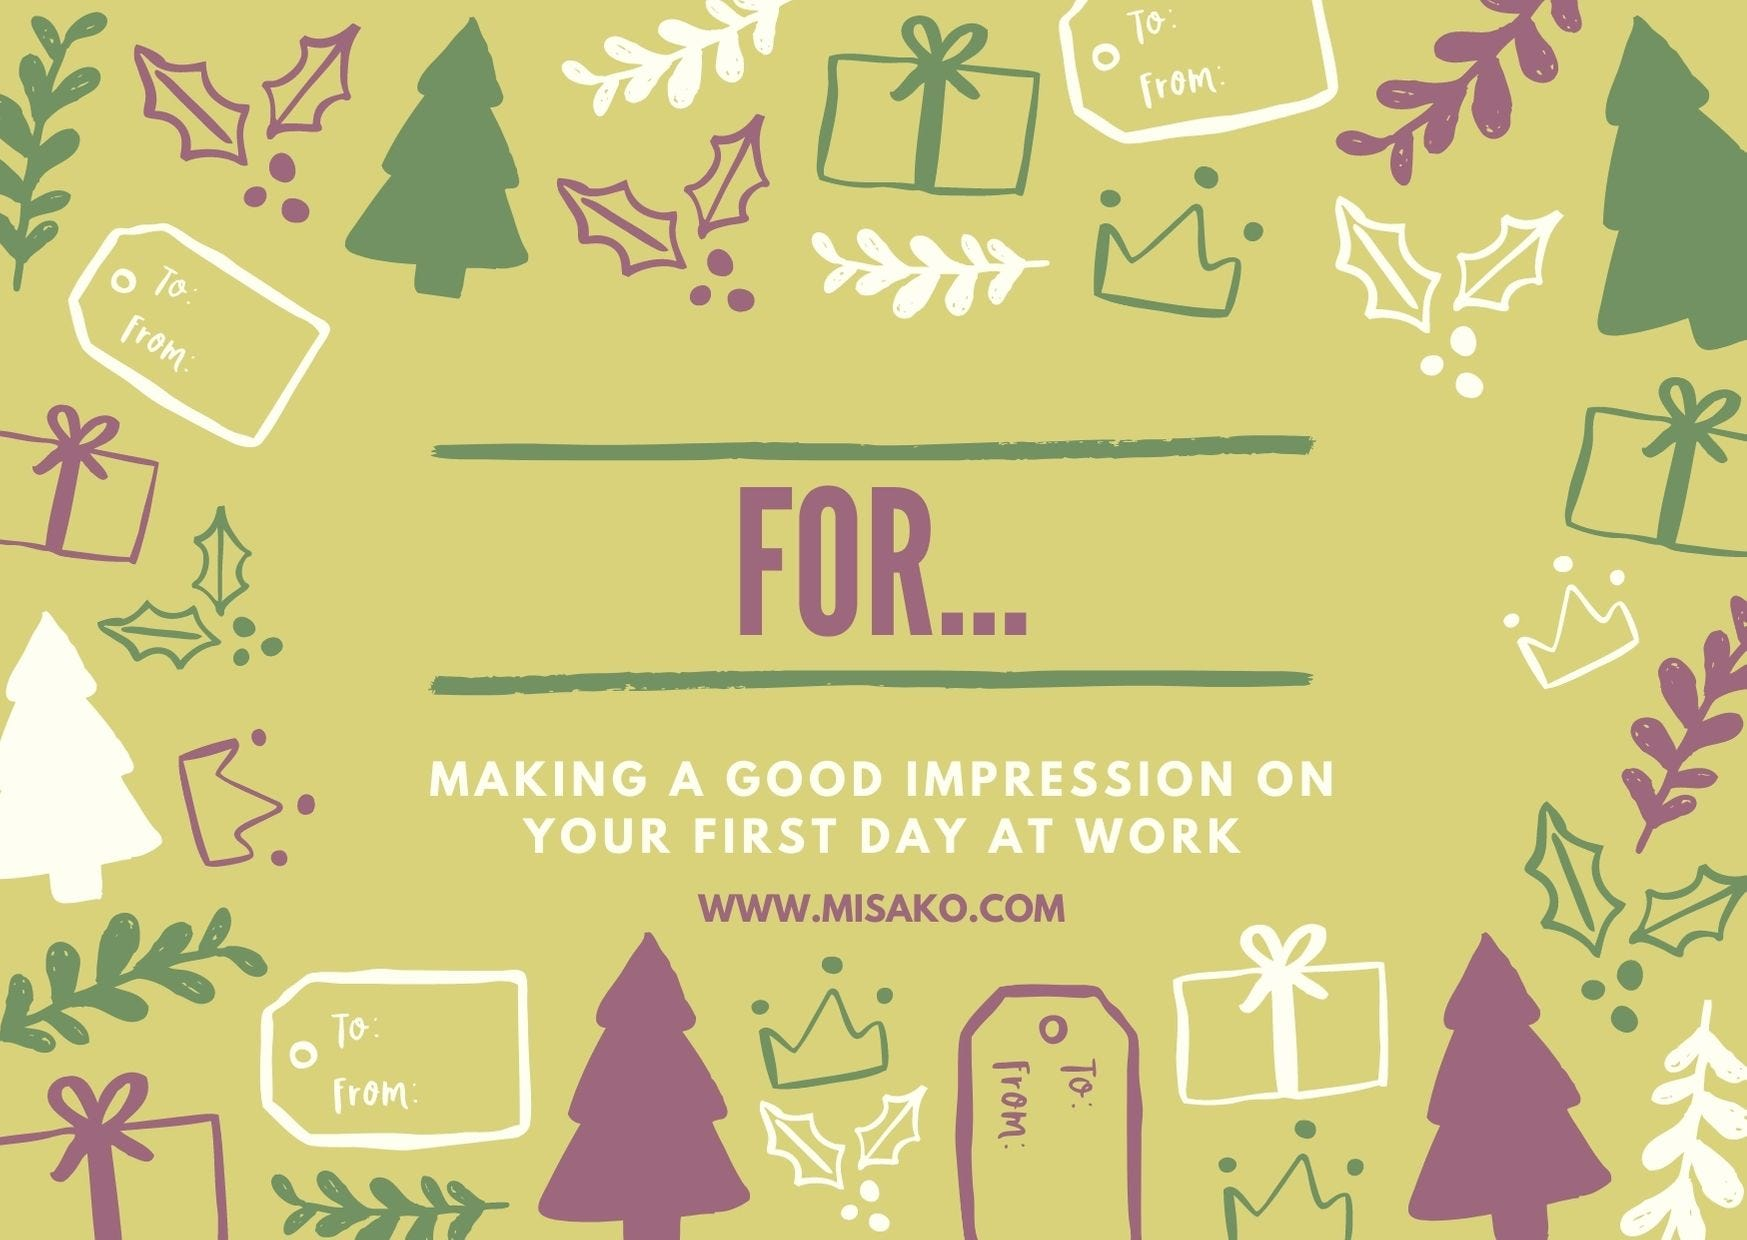 Card to print 5: For making a good impression on your first day at work